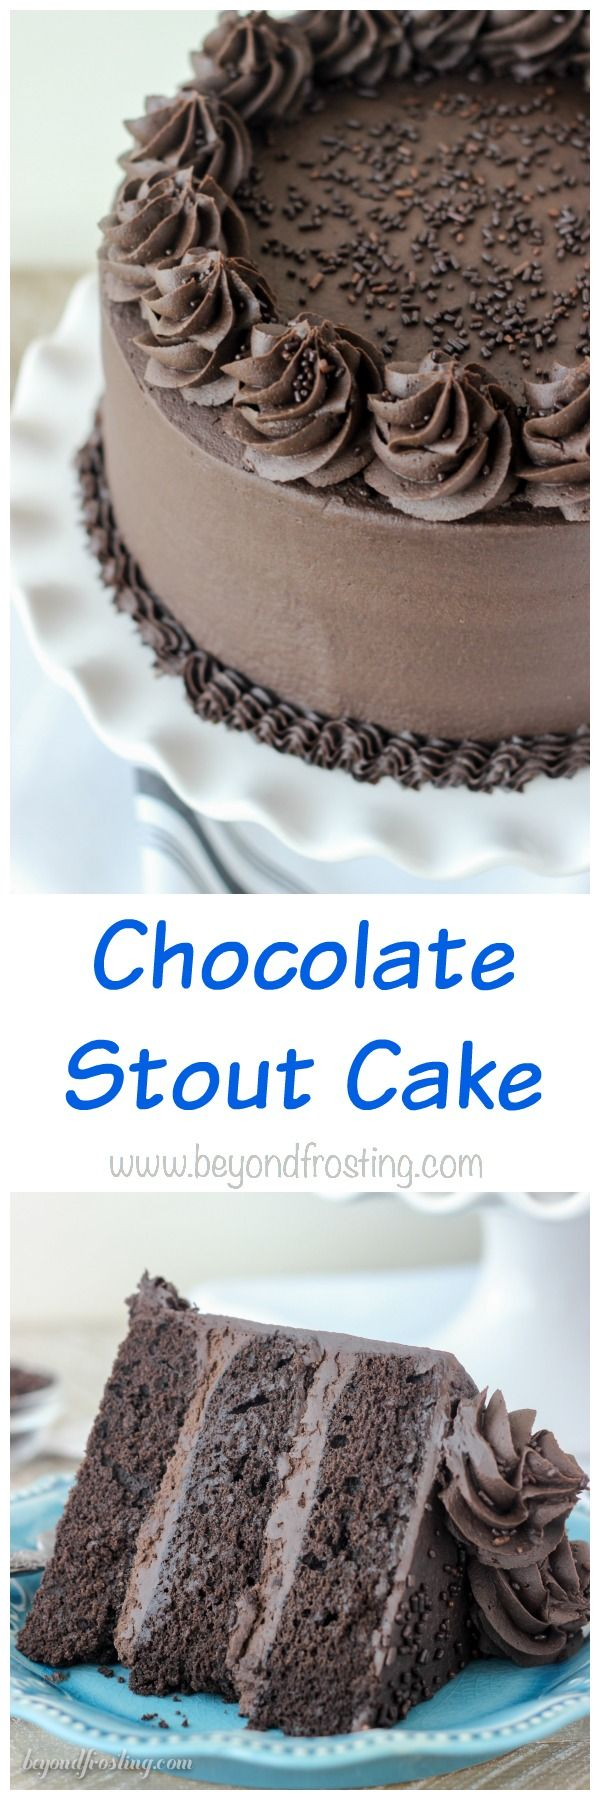 """This Decedent Chocolate Stout Cake is a dark chocolate cake spiked with chocolate stout beer. It's topped with a mouthwatering dark chocolate frosting. This rich chocolate cake is best accompanied by a big glass of milk. 